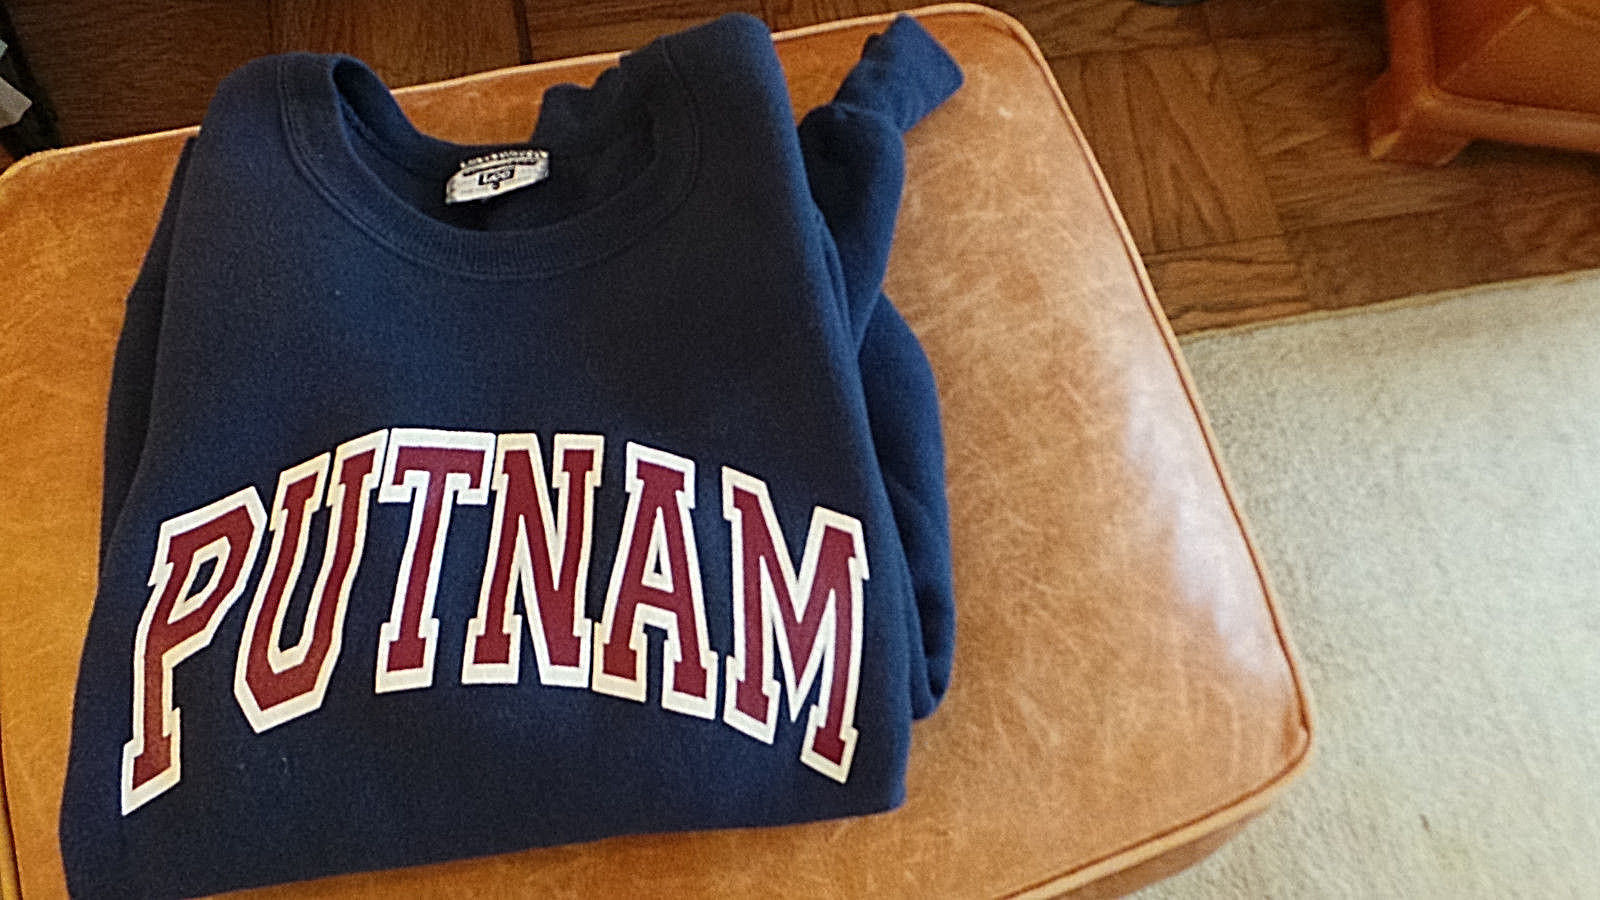 Putnam Sweatshirt in Navy Color w Bold Letters Size XL Made in USA by Lee VG+